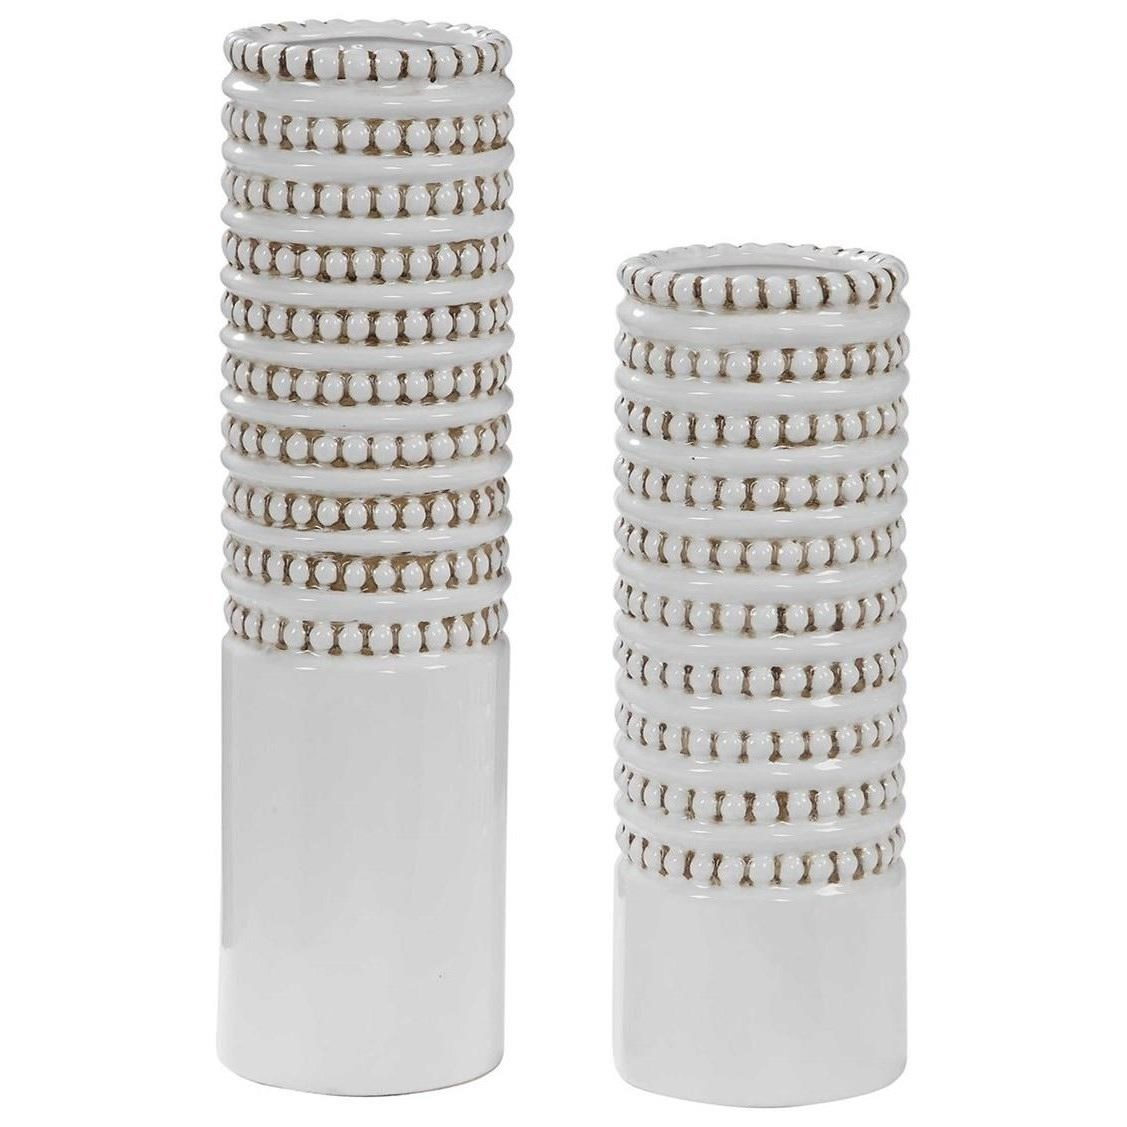 Accessories - Vases and Urns Angelou White Vases, Set/2 by Uttermost at Suburban Furniture